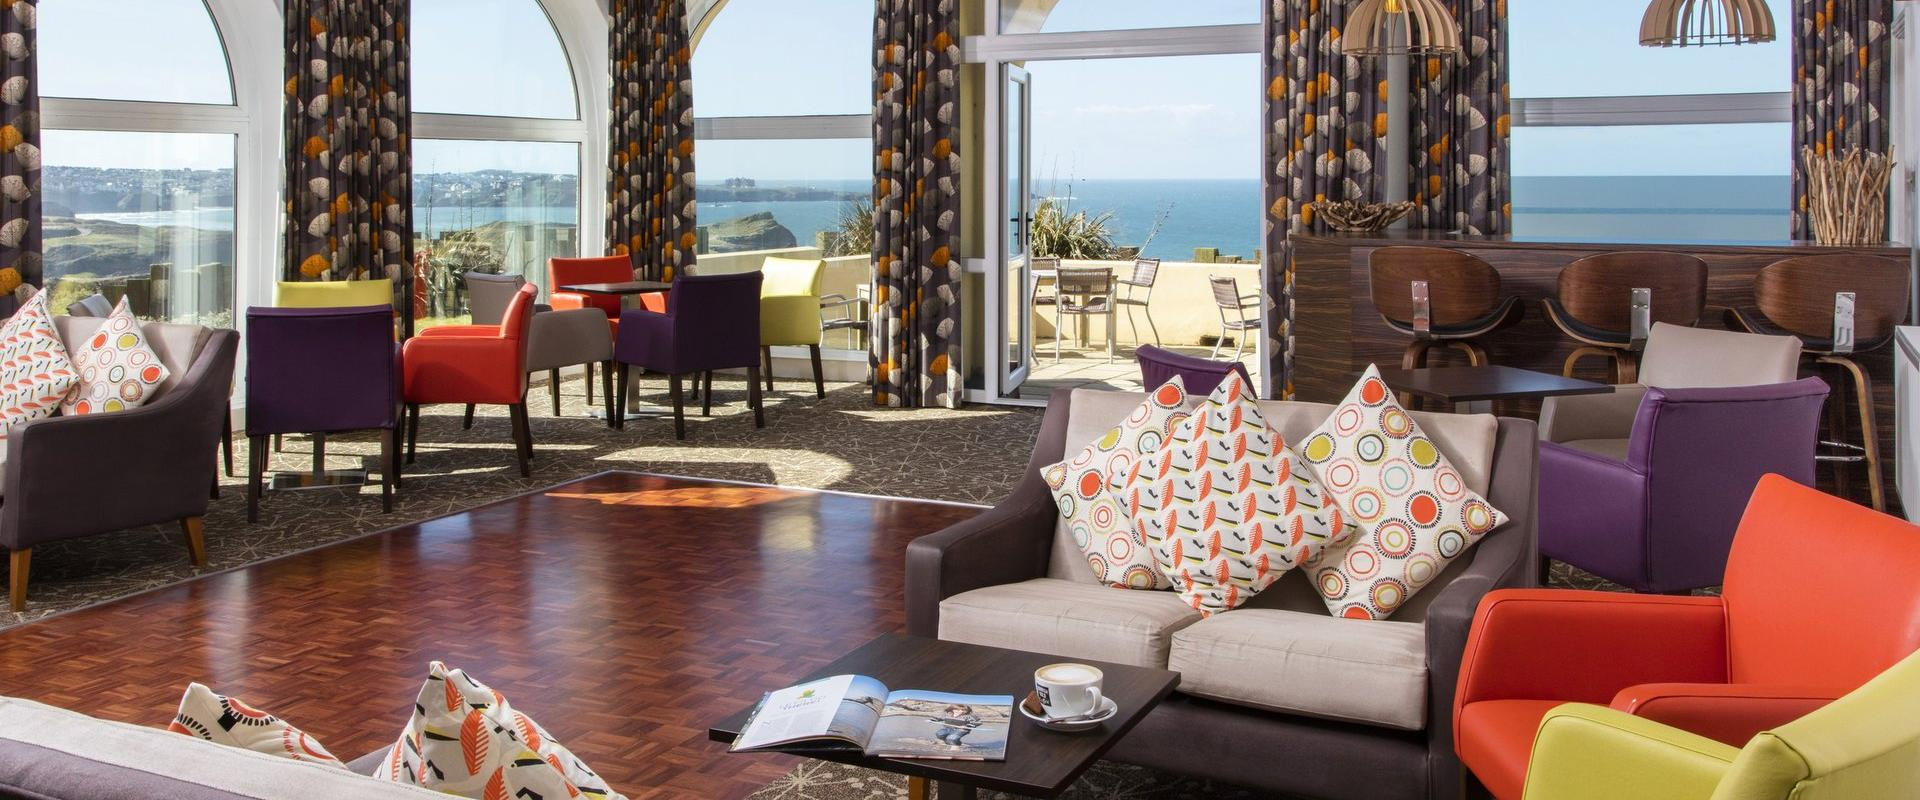 Family friendly hotel in Cornwall, Sands Resort Hotel